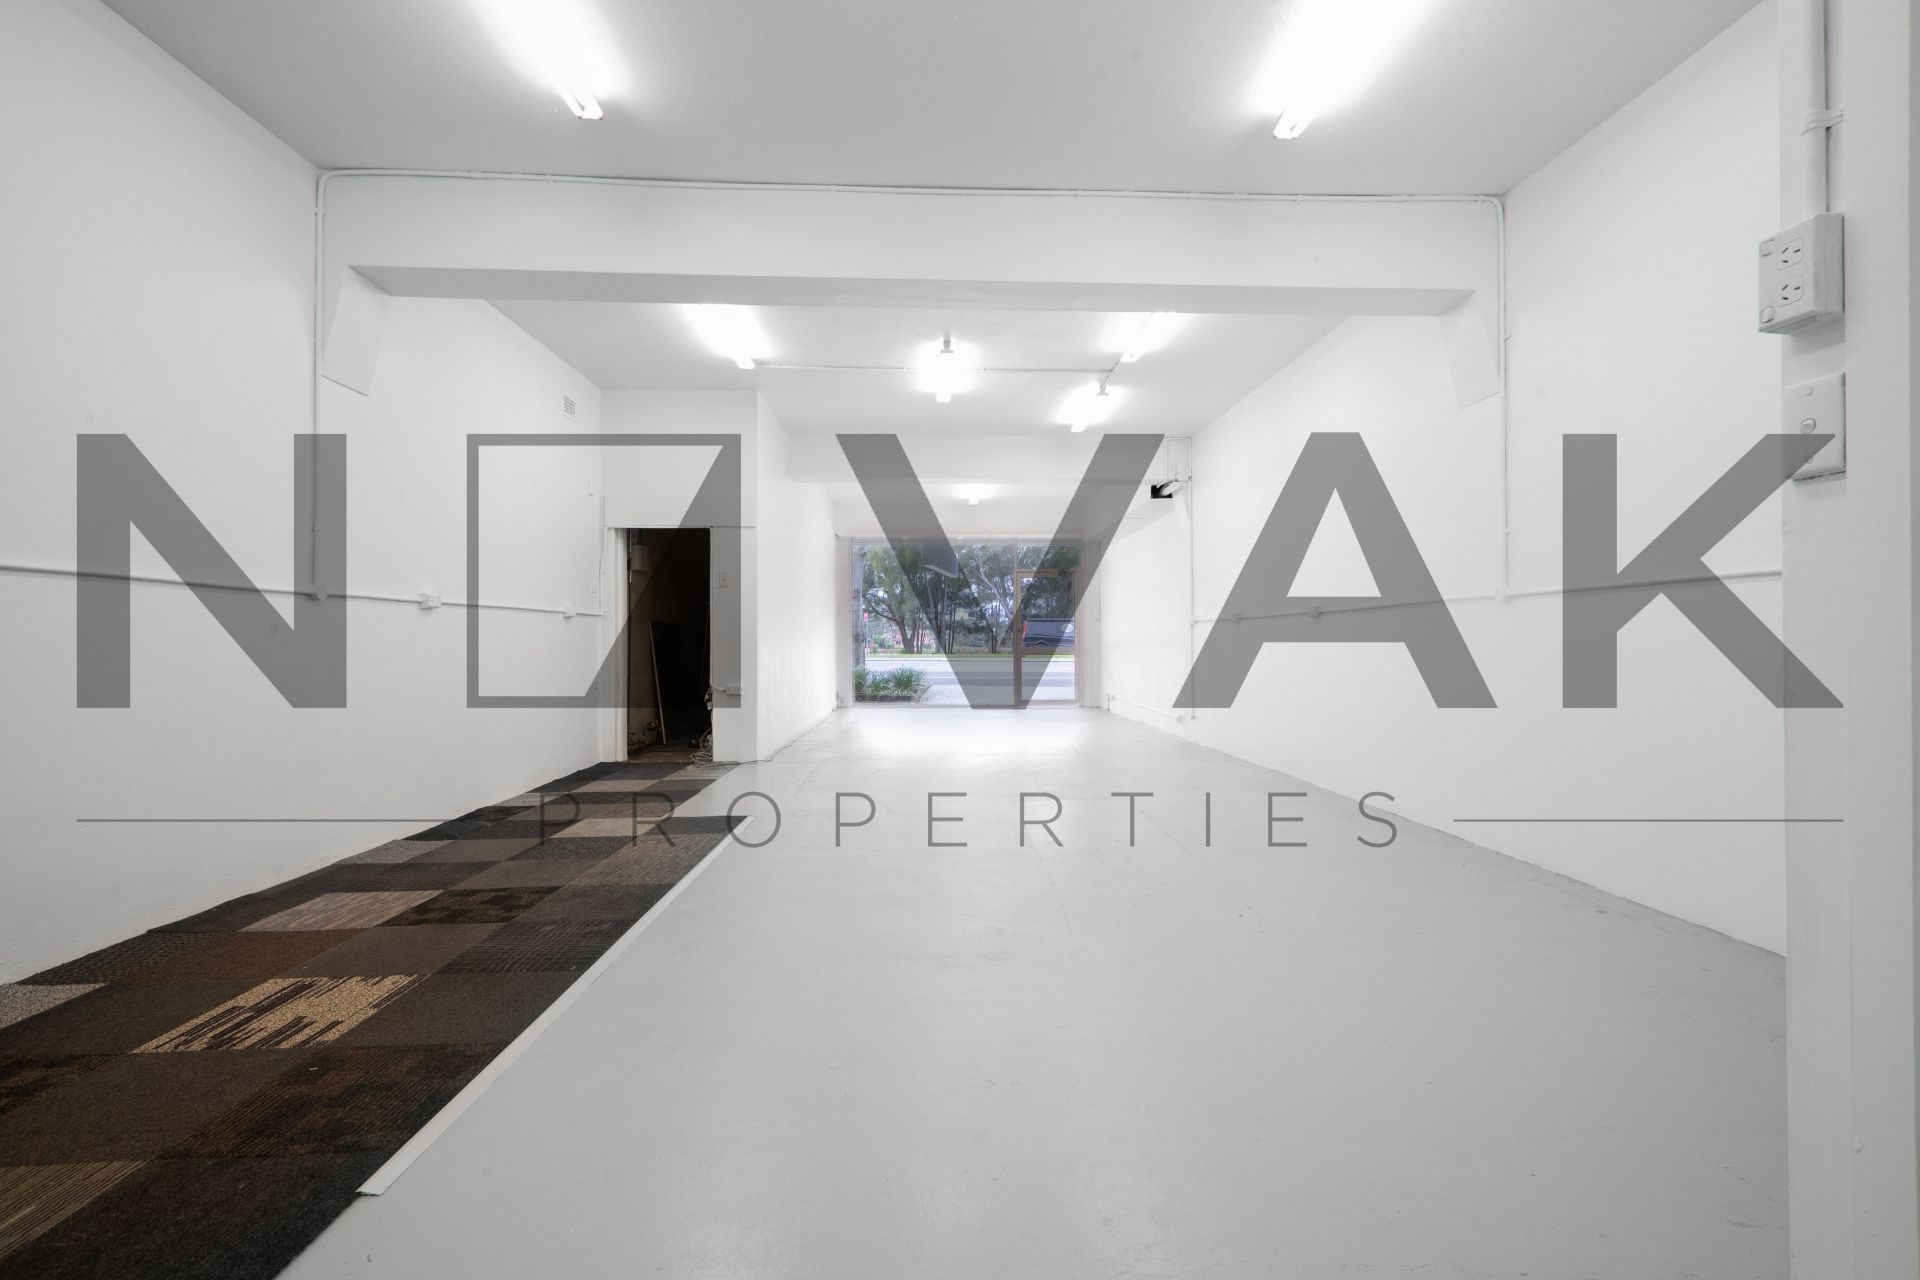 MUST BE LEASED! 6 MONTHS FREE RENT INCENTIVE